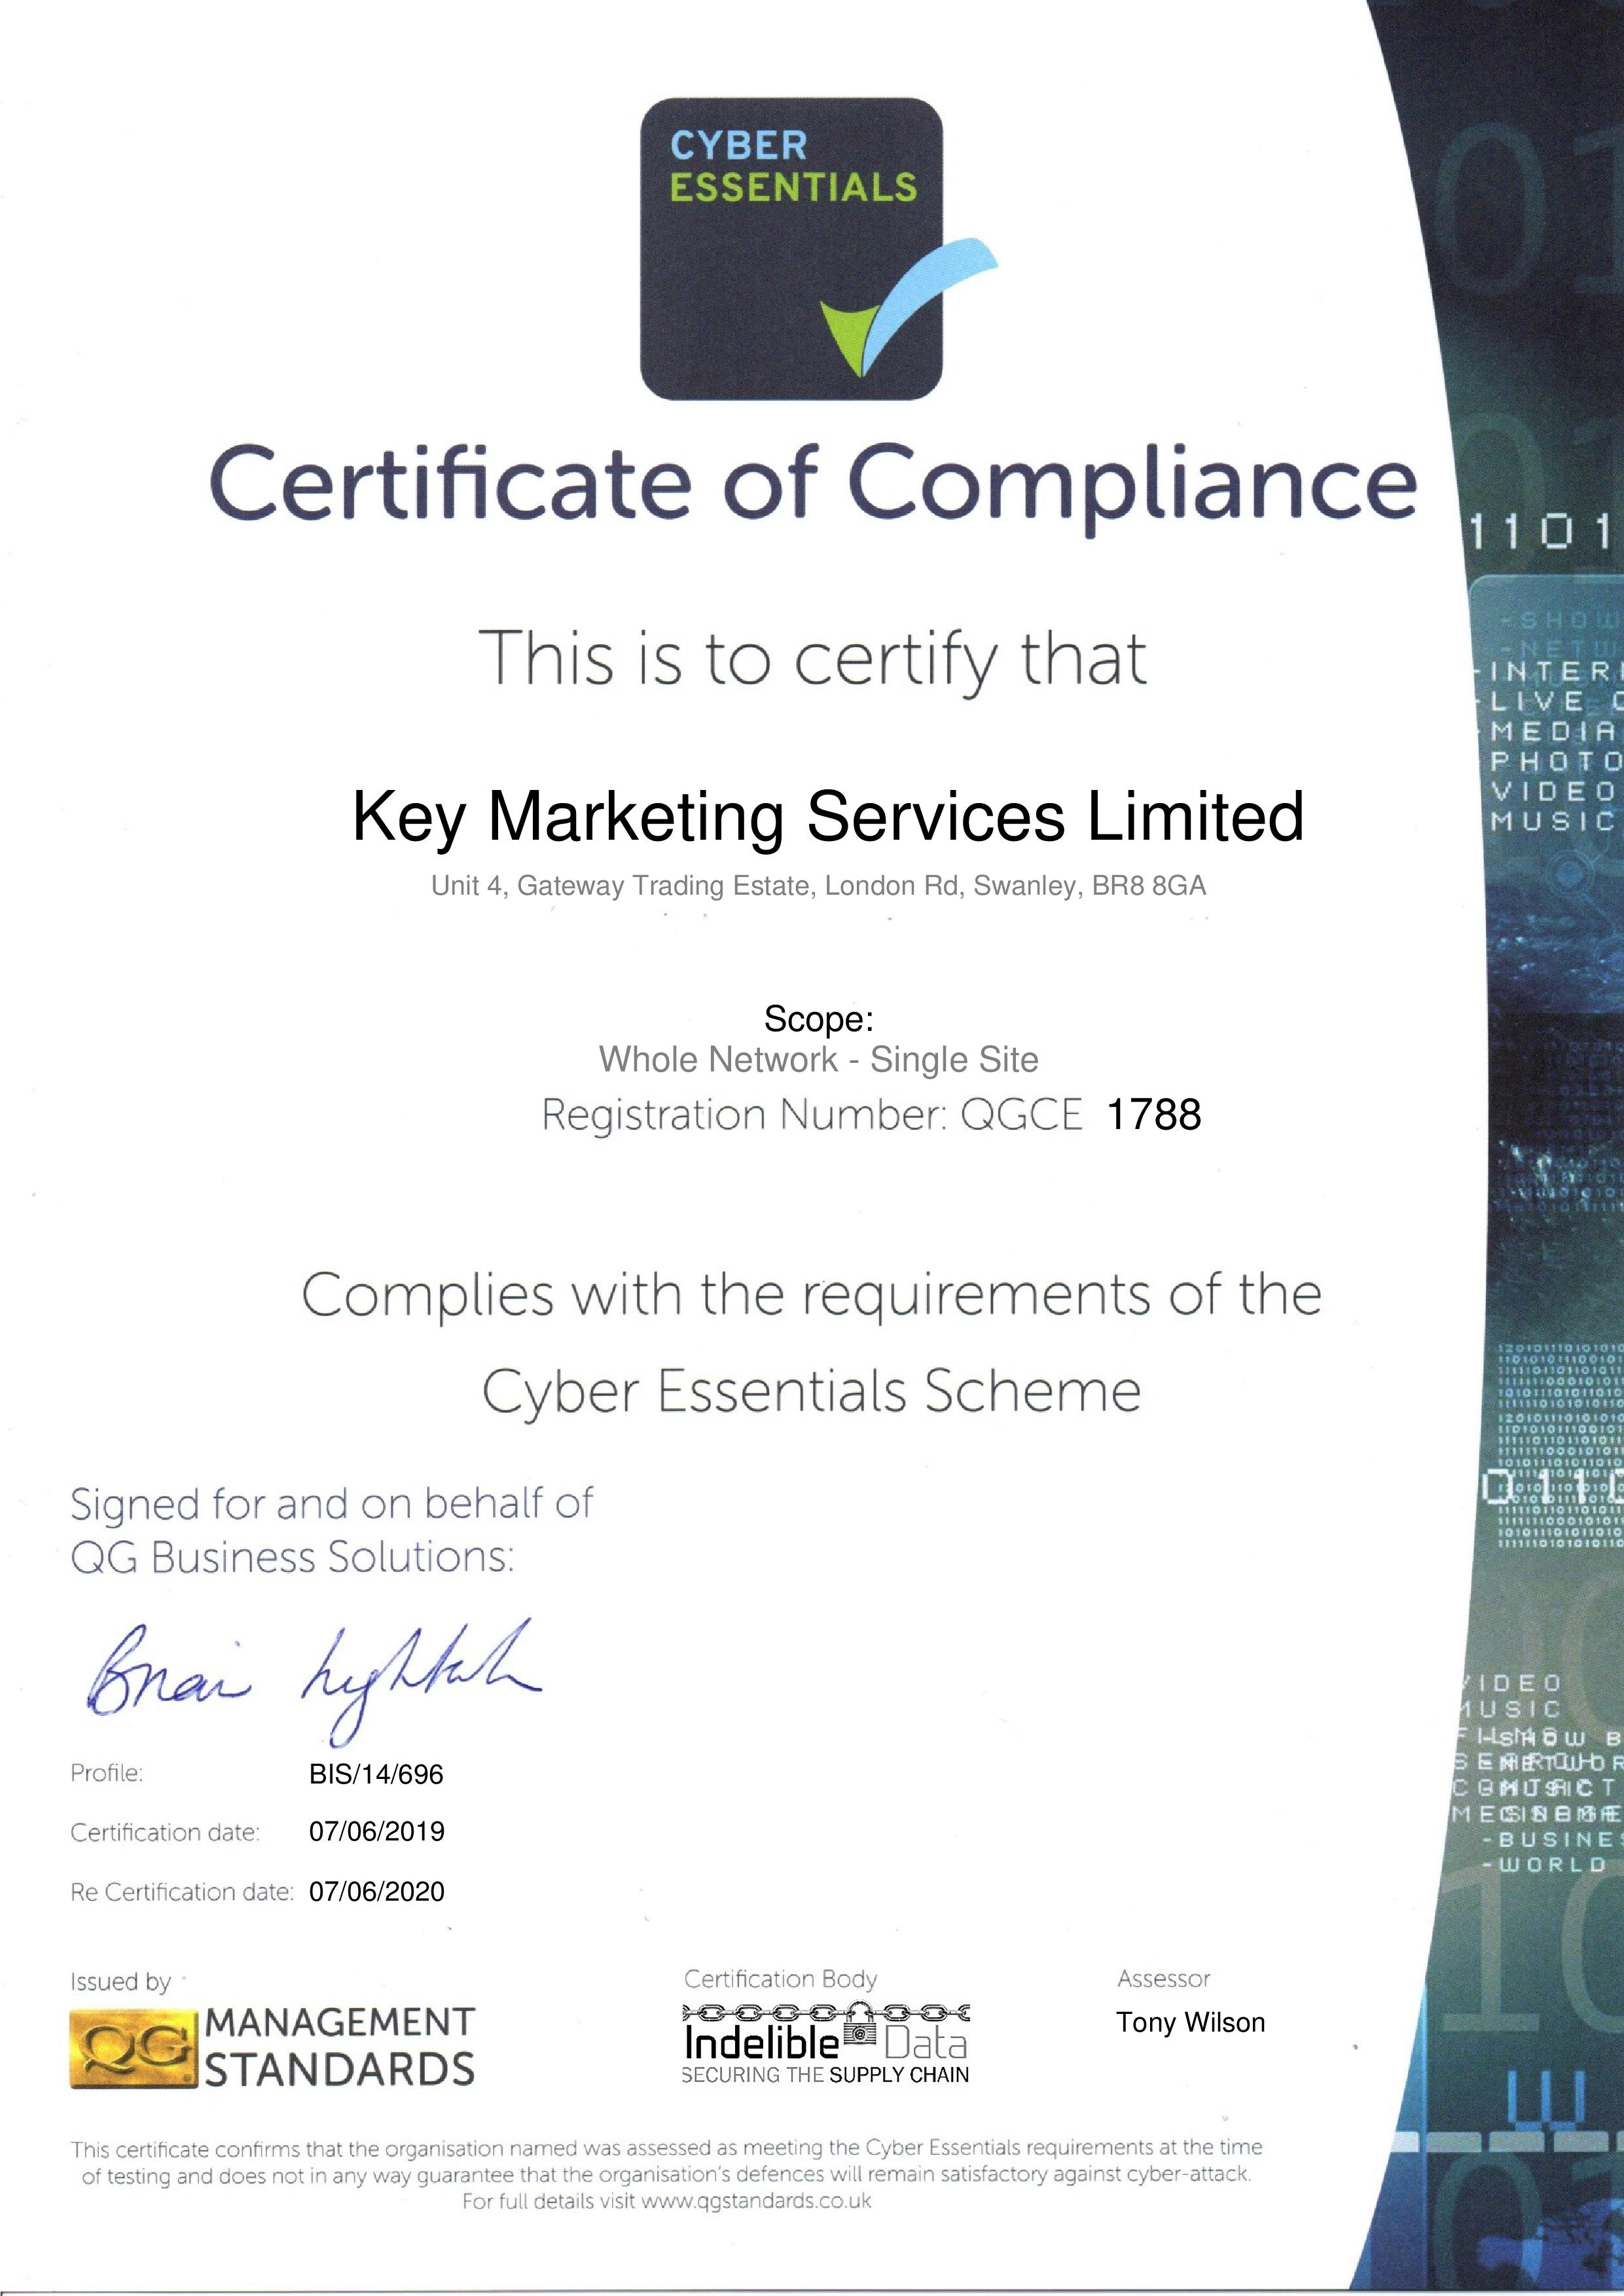 QGCE1788  Key Marketing Services Limited